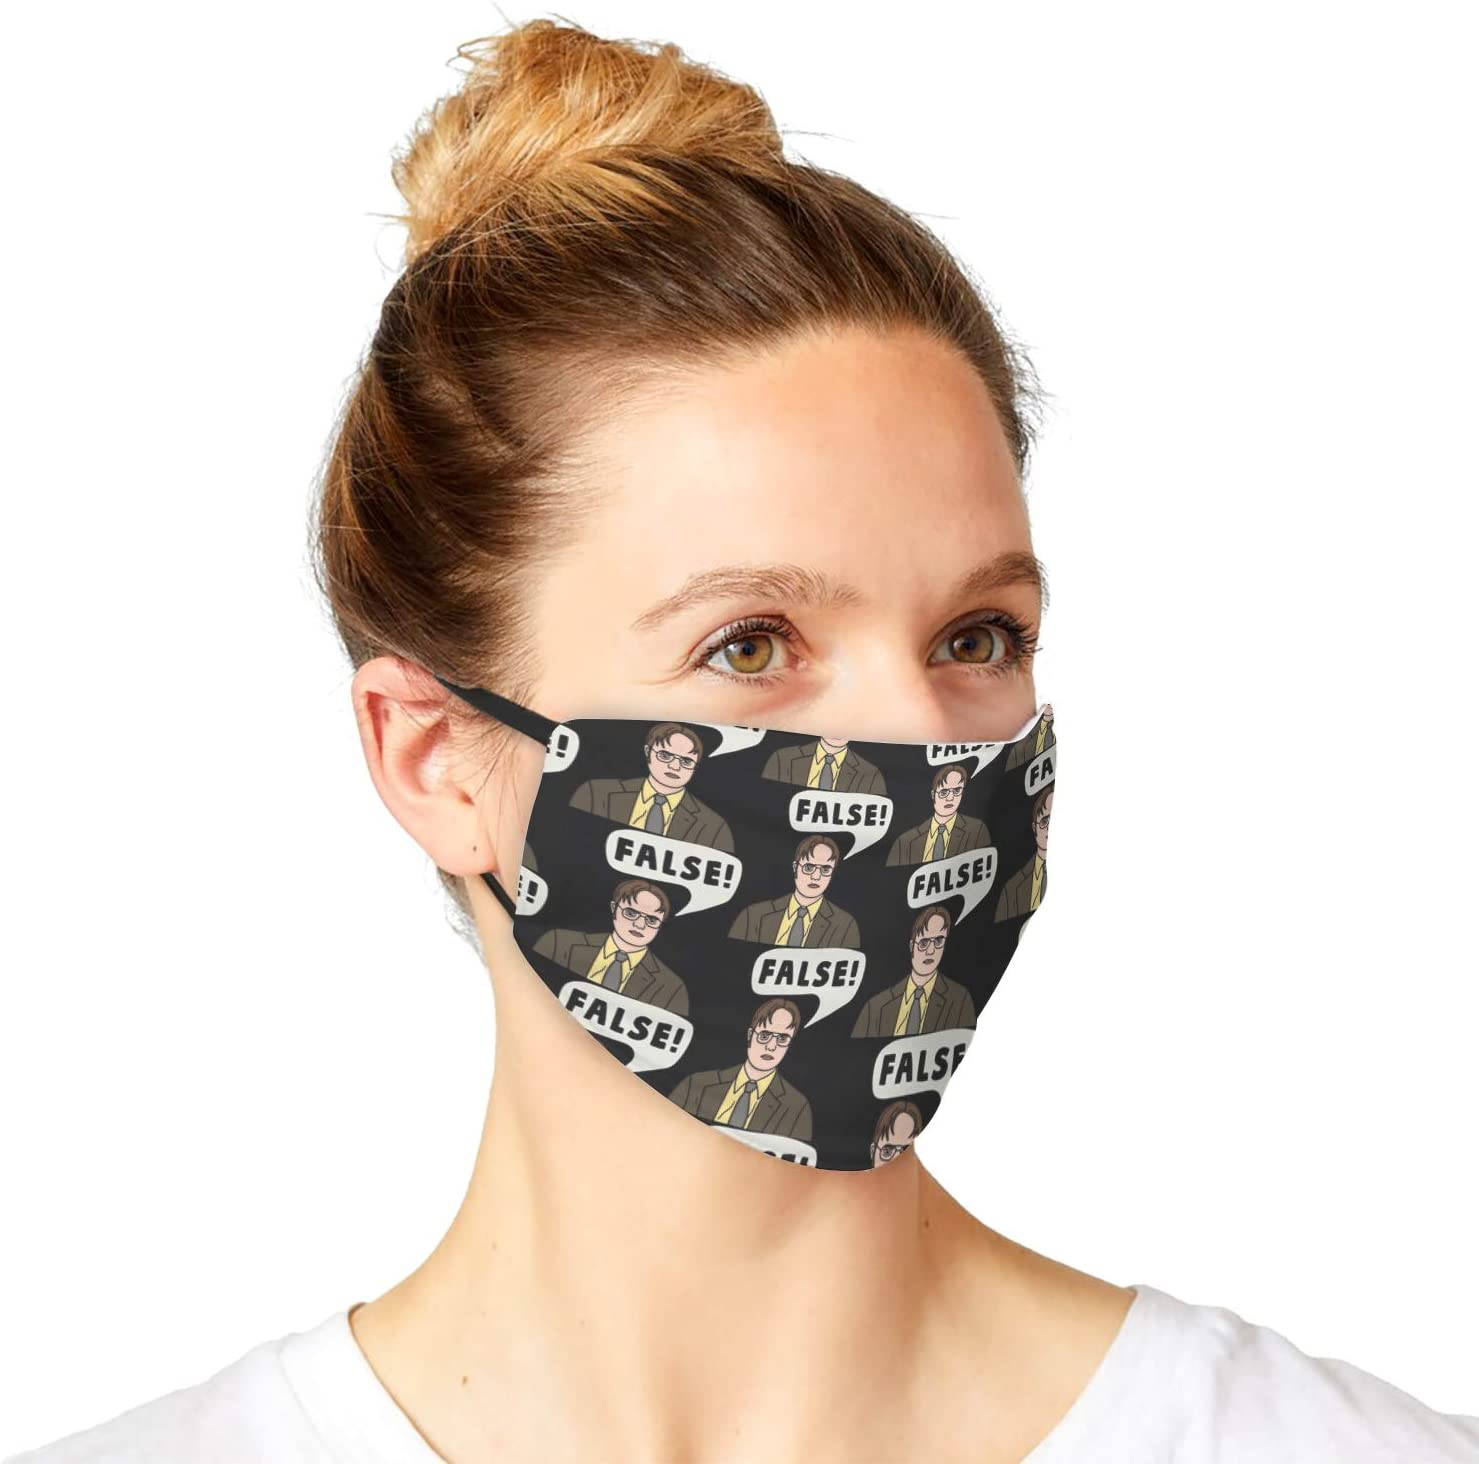 Air Pollution Anti Dust Sun Protective Accessories Women with Dwight Schrute The Office False Quote Design Cloth Face Covering for Men